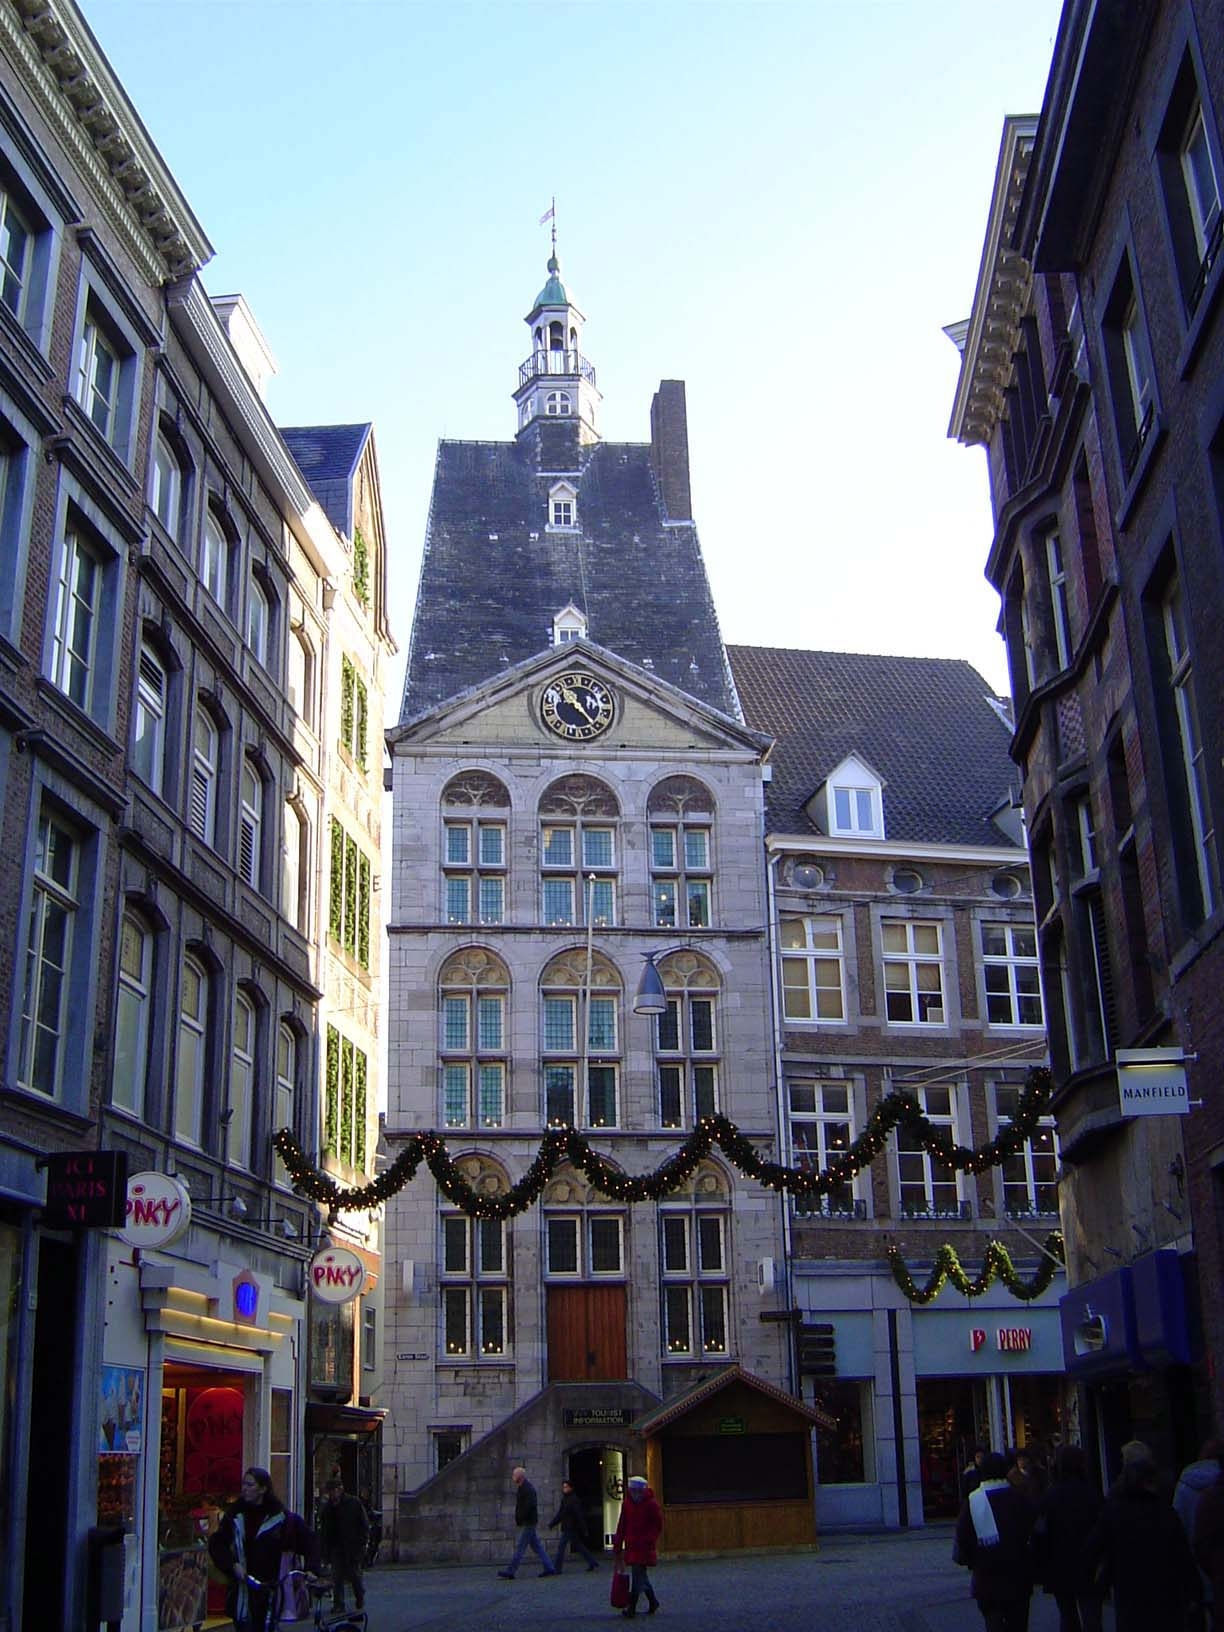 The Netherlands: Maastricht